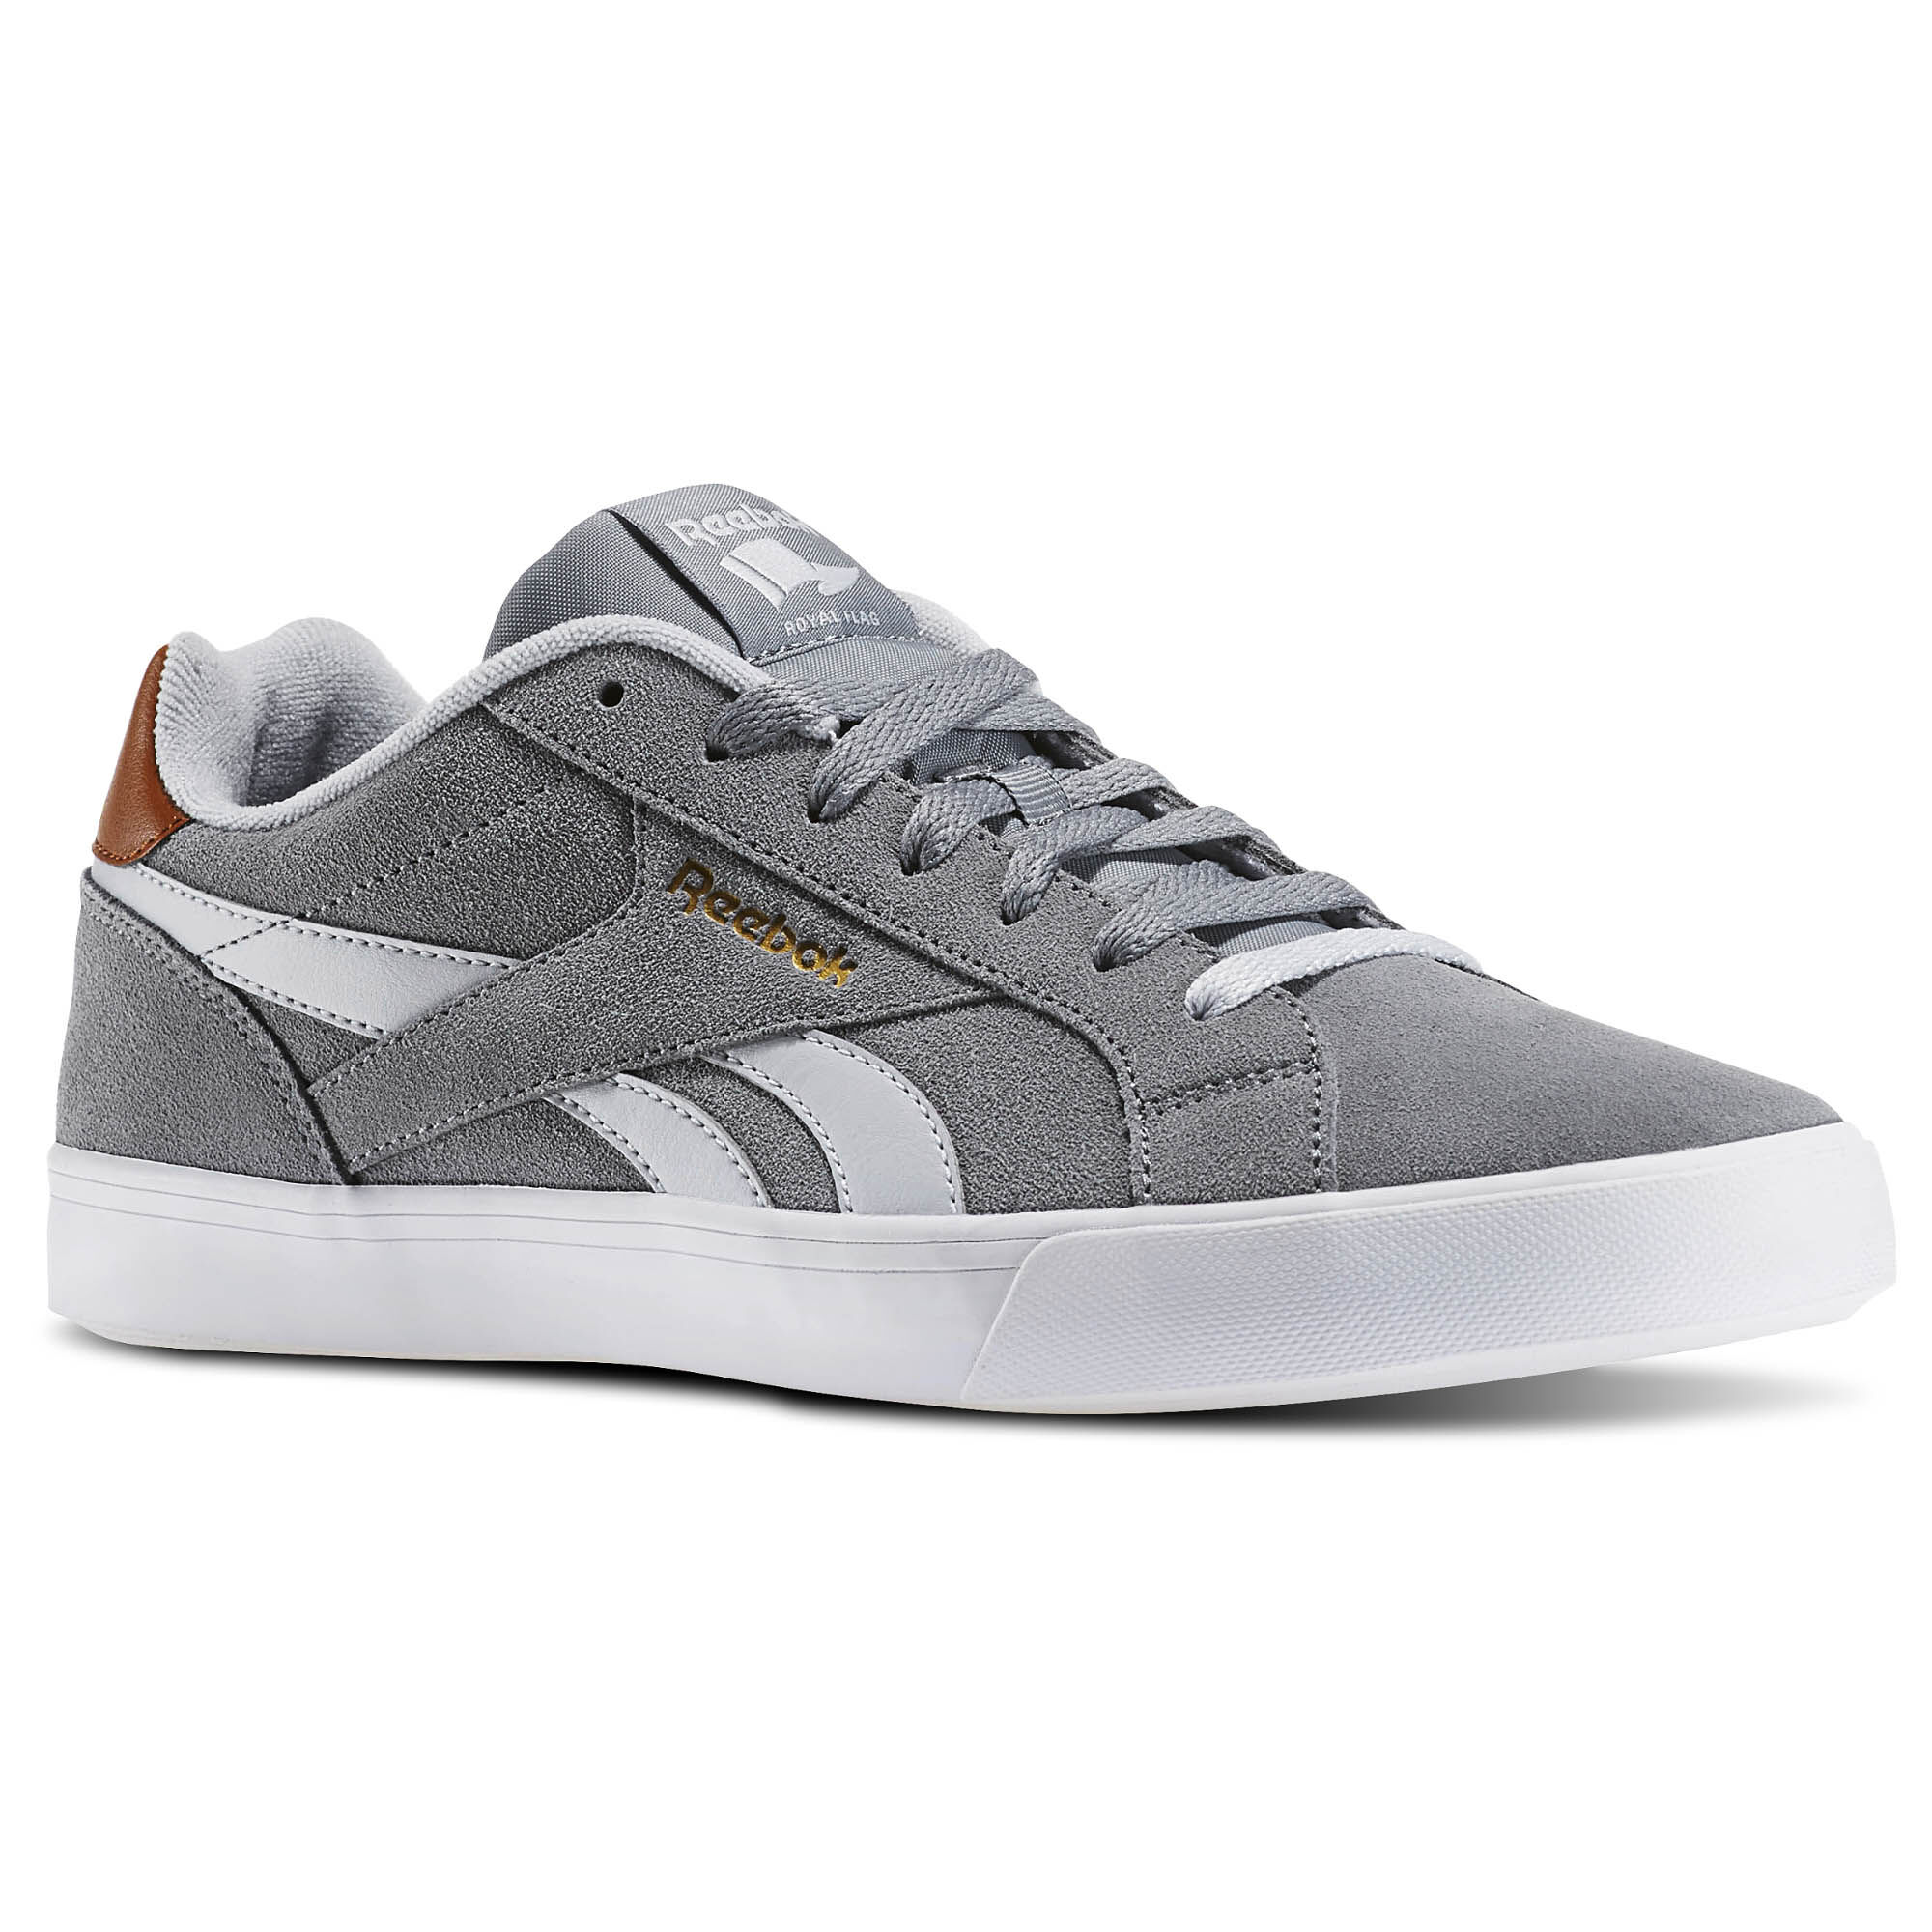 Reebok - Reebok Royal Complete 2LS Asteroid Dust/Cloud Grey/Brown  Malt/White. Read all 15 reviews. Men Classics